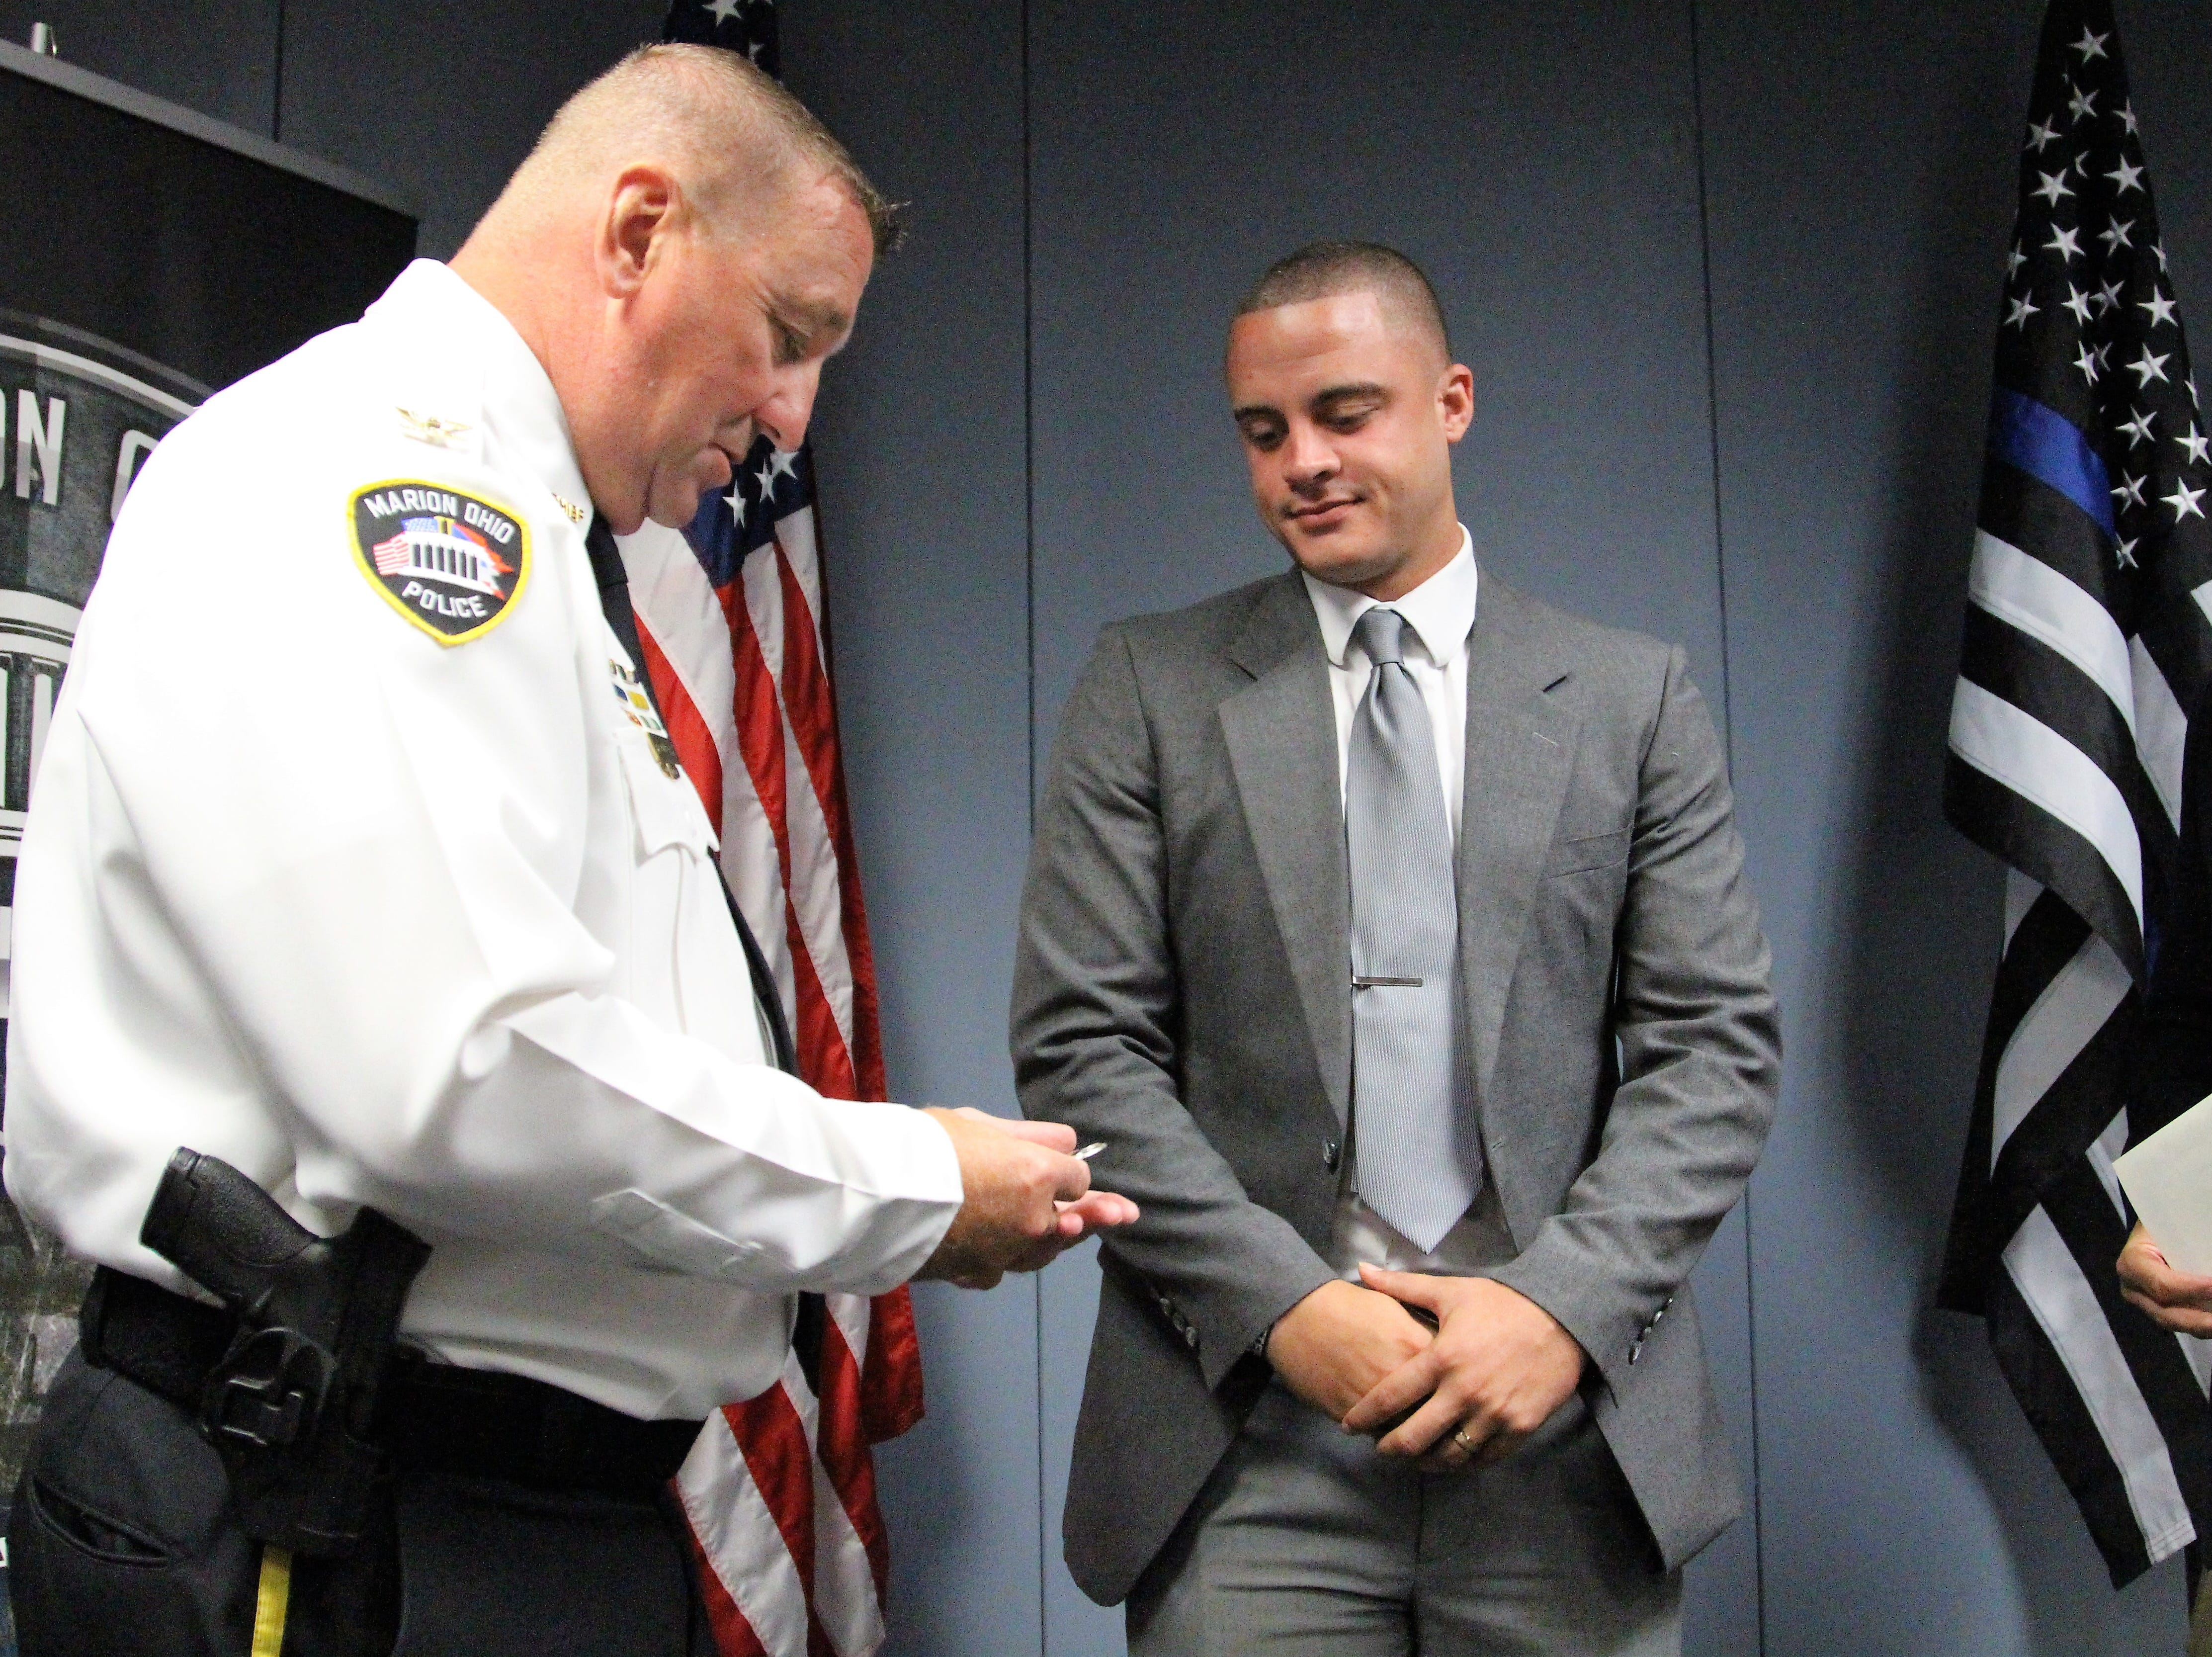 Marion Police Chief Bill Collins prepares to hand new hire Sebastian Walker his police badge during a Monday afternoon ceremony.